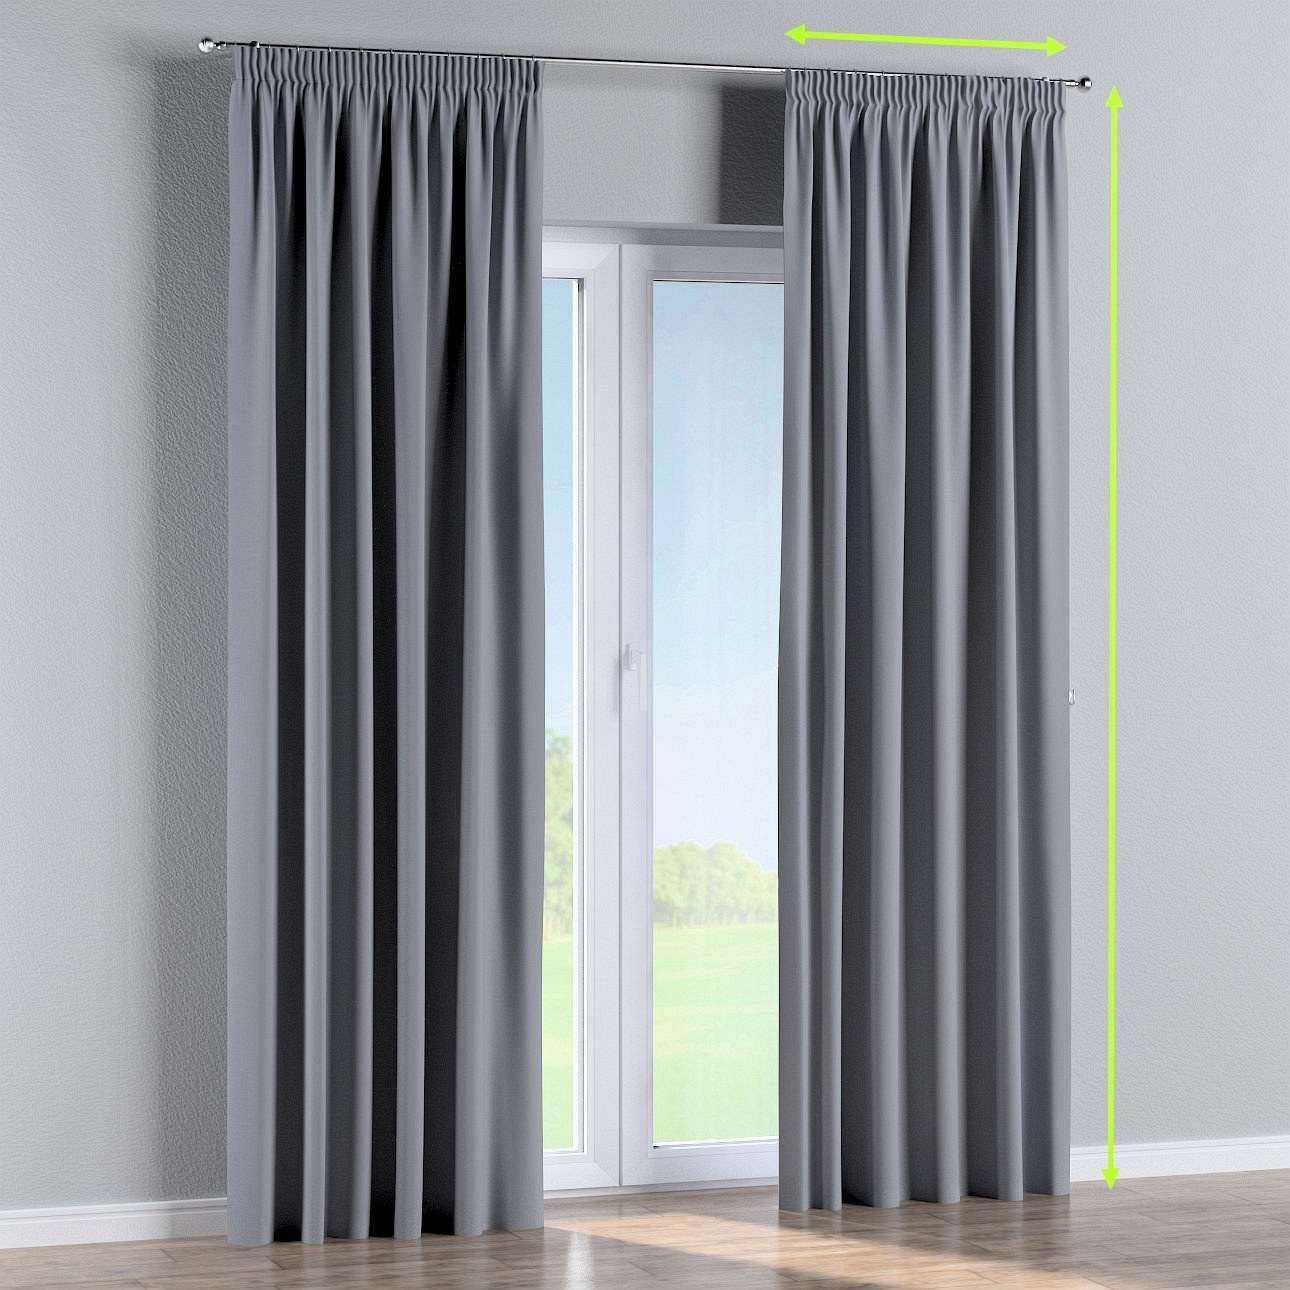 Pencil pleat curtain in collection Blackout, fabric: 269-96